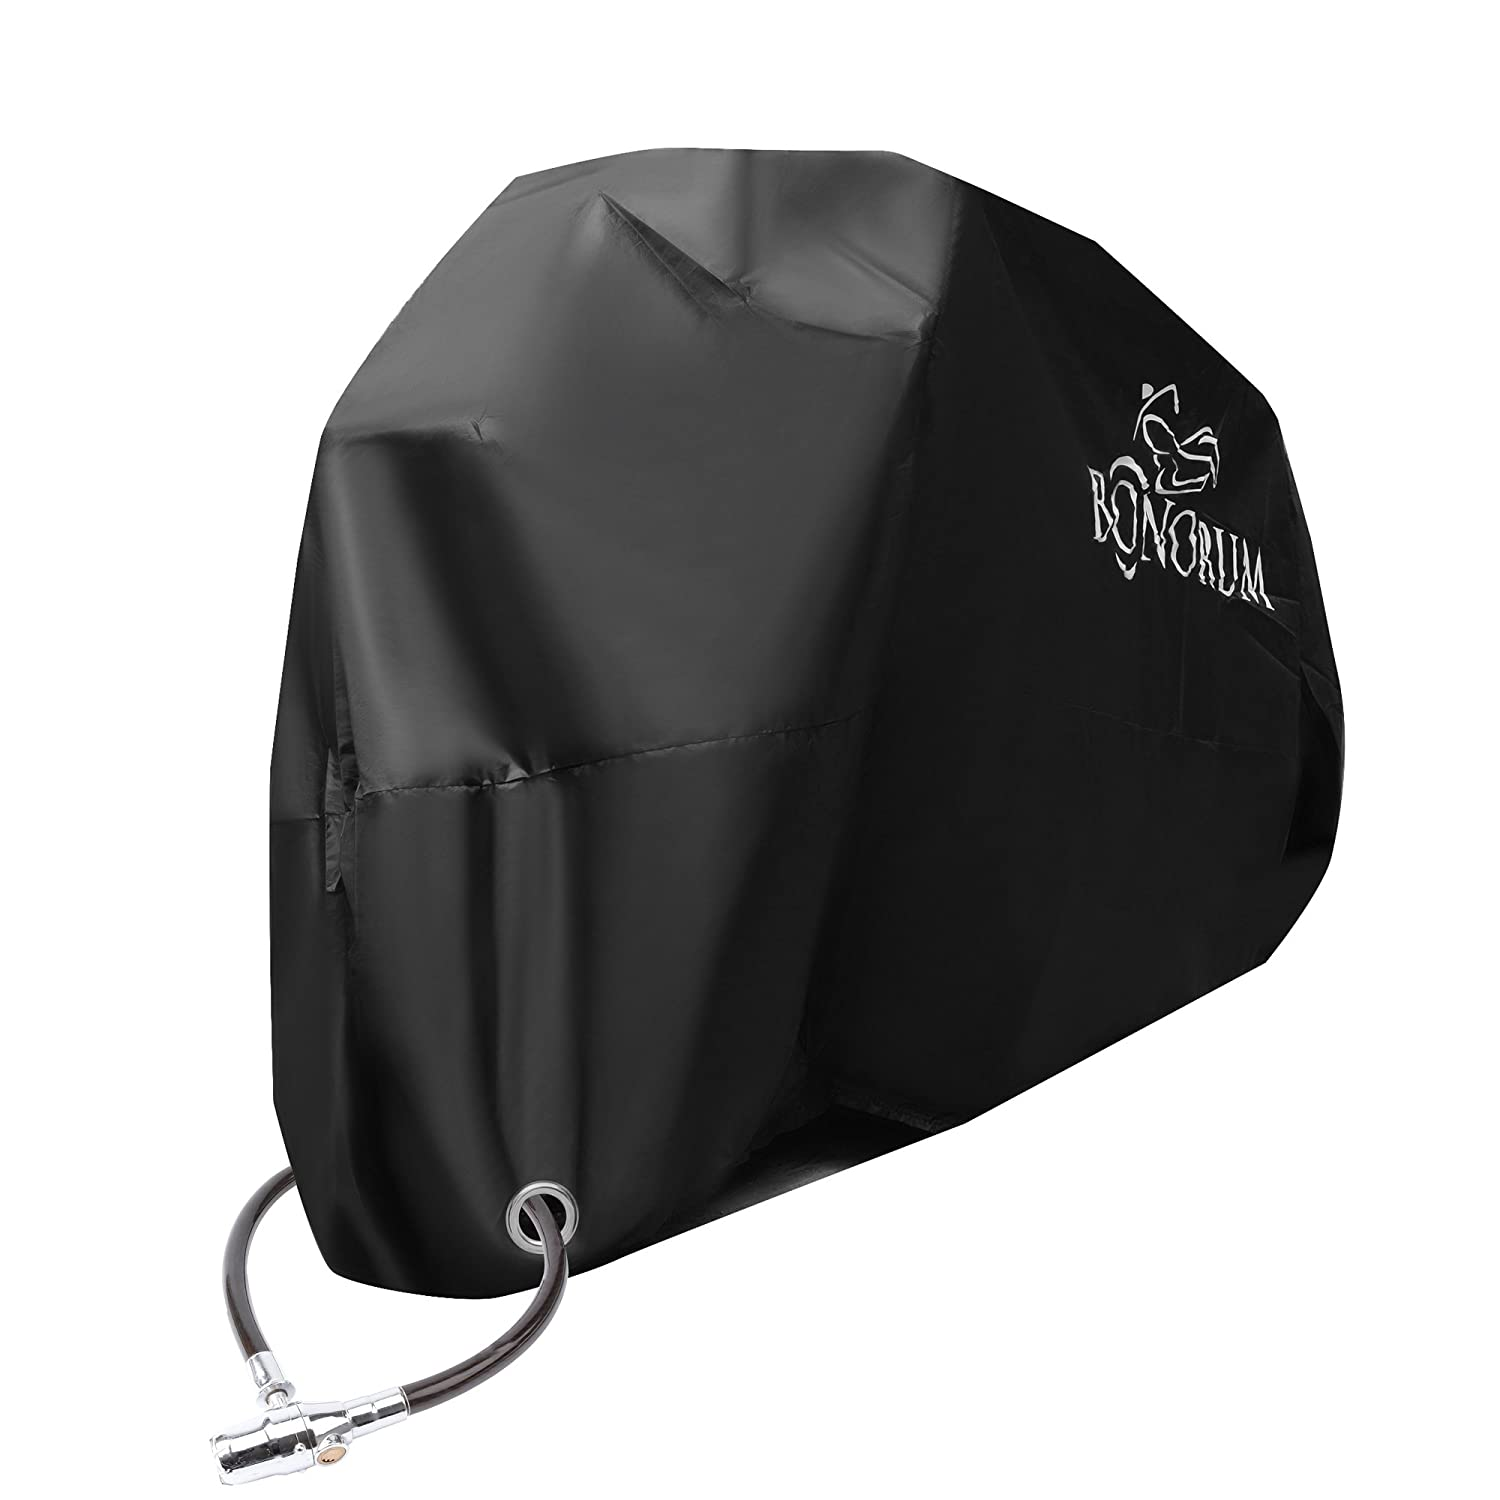 Premium Motorbike Cover | BONORUM® tear-resistant 190T outdoor motorcycle cover | 2 lock-holes | perfect protection against rain, snow, sun or dust | (XXL) Mambo One GmbH